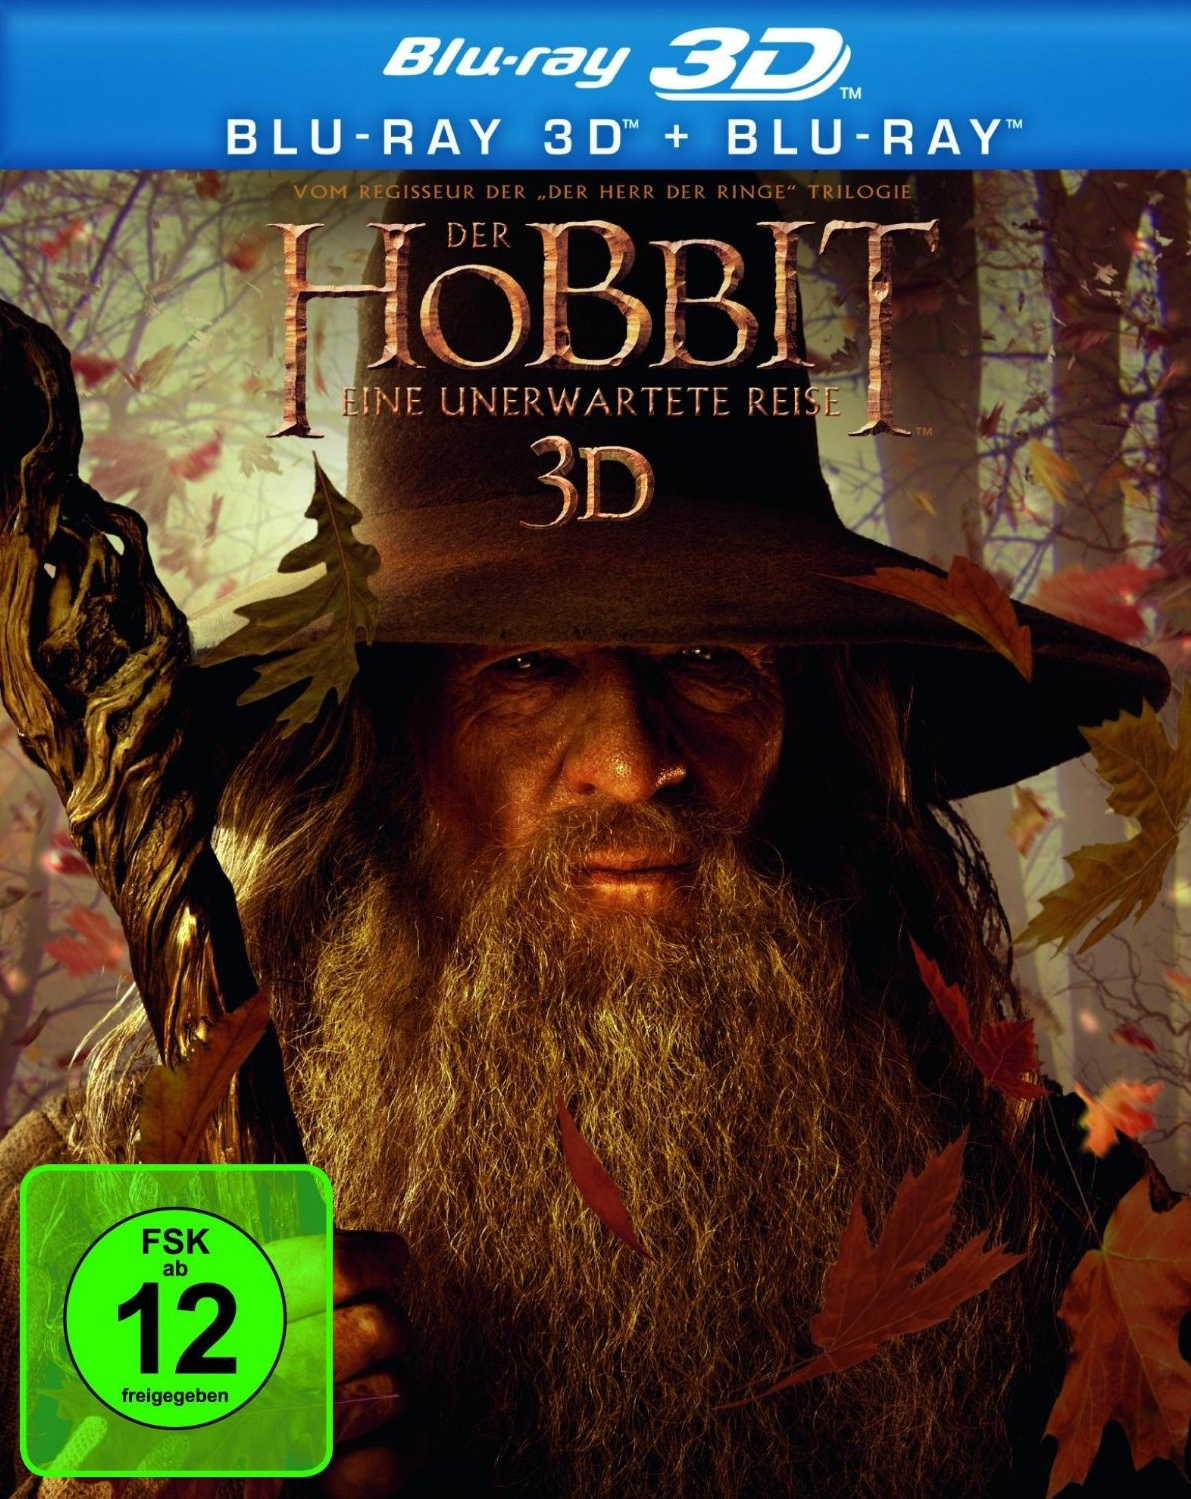 The+Hobbit+An+Unexpected+Journey+2012+BluRay+720p+3D+Half SBS+x264+BRRIP+1,1GB